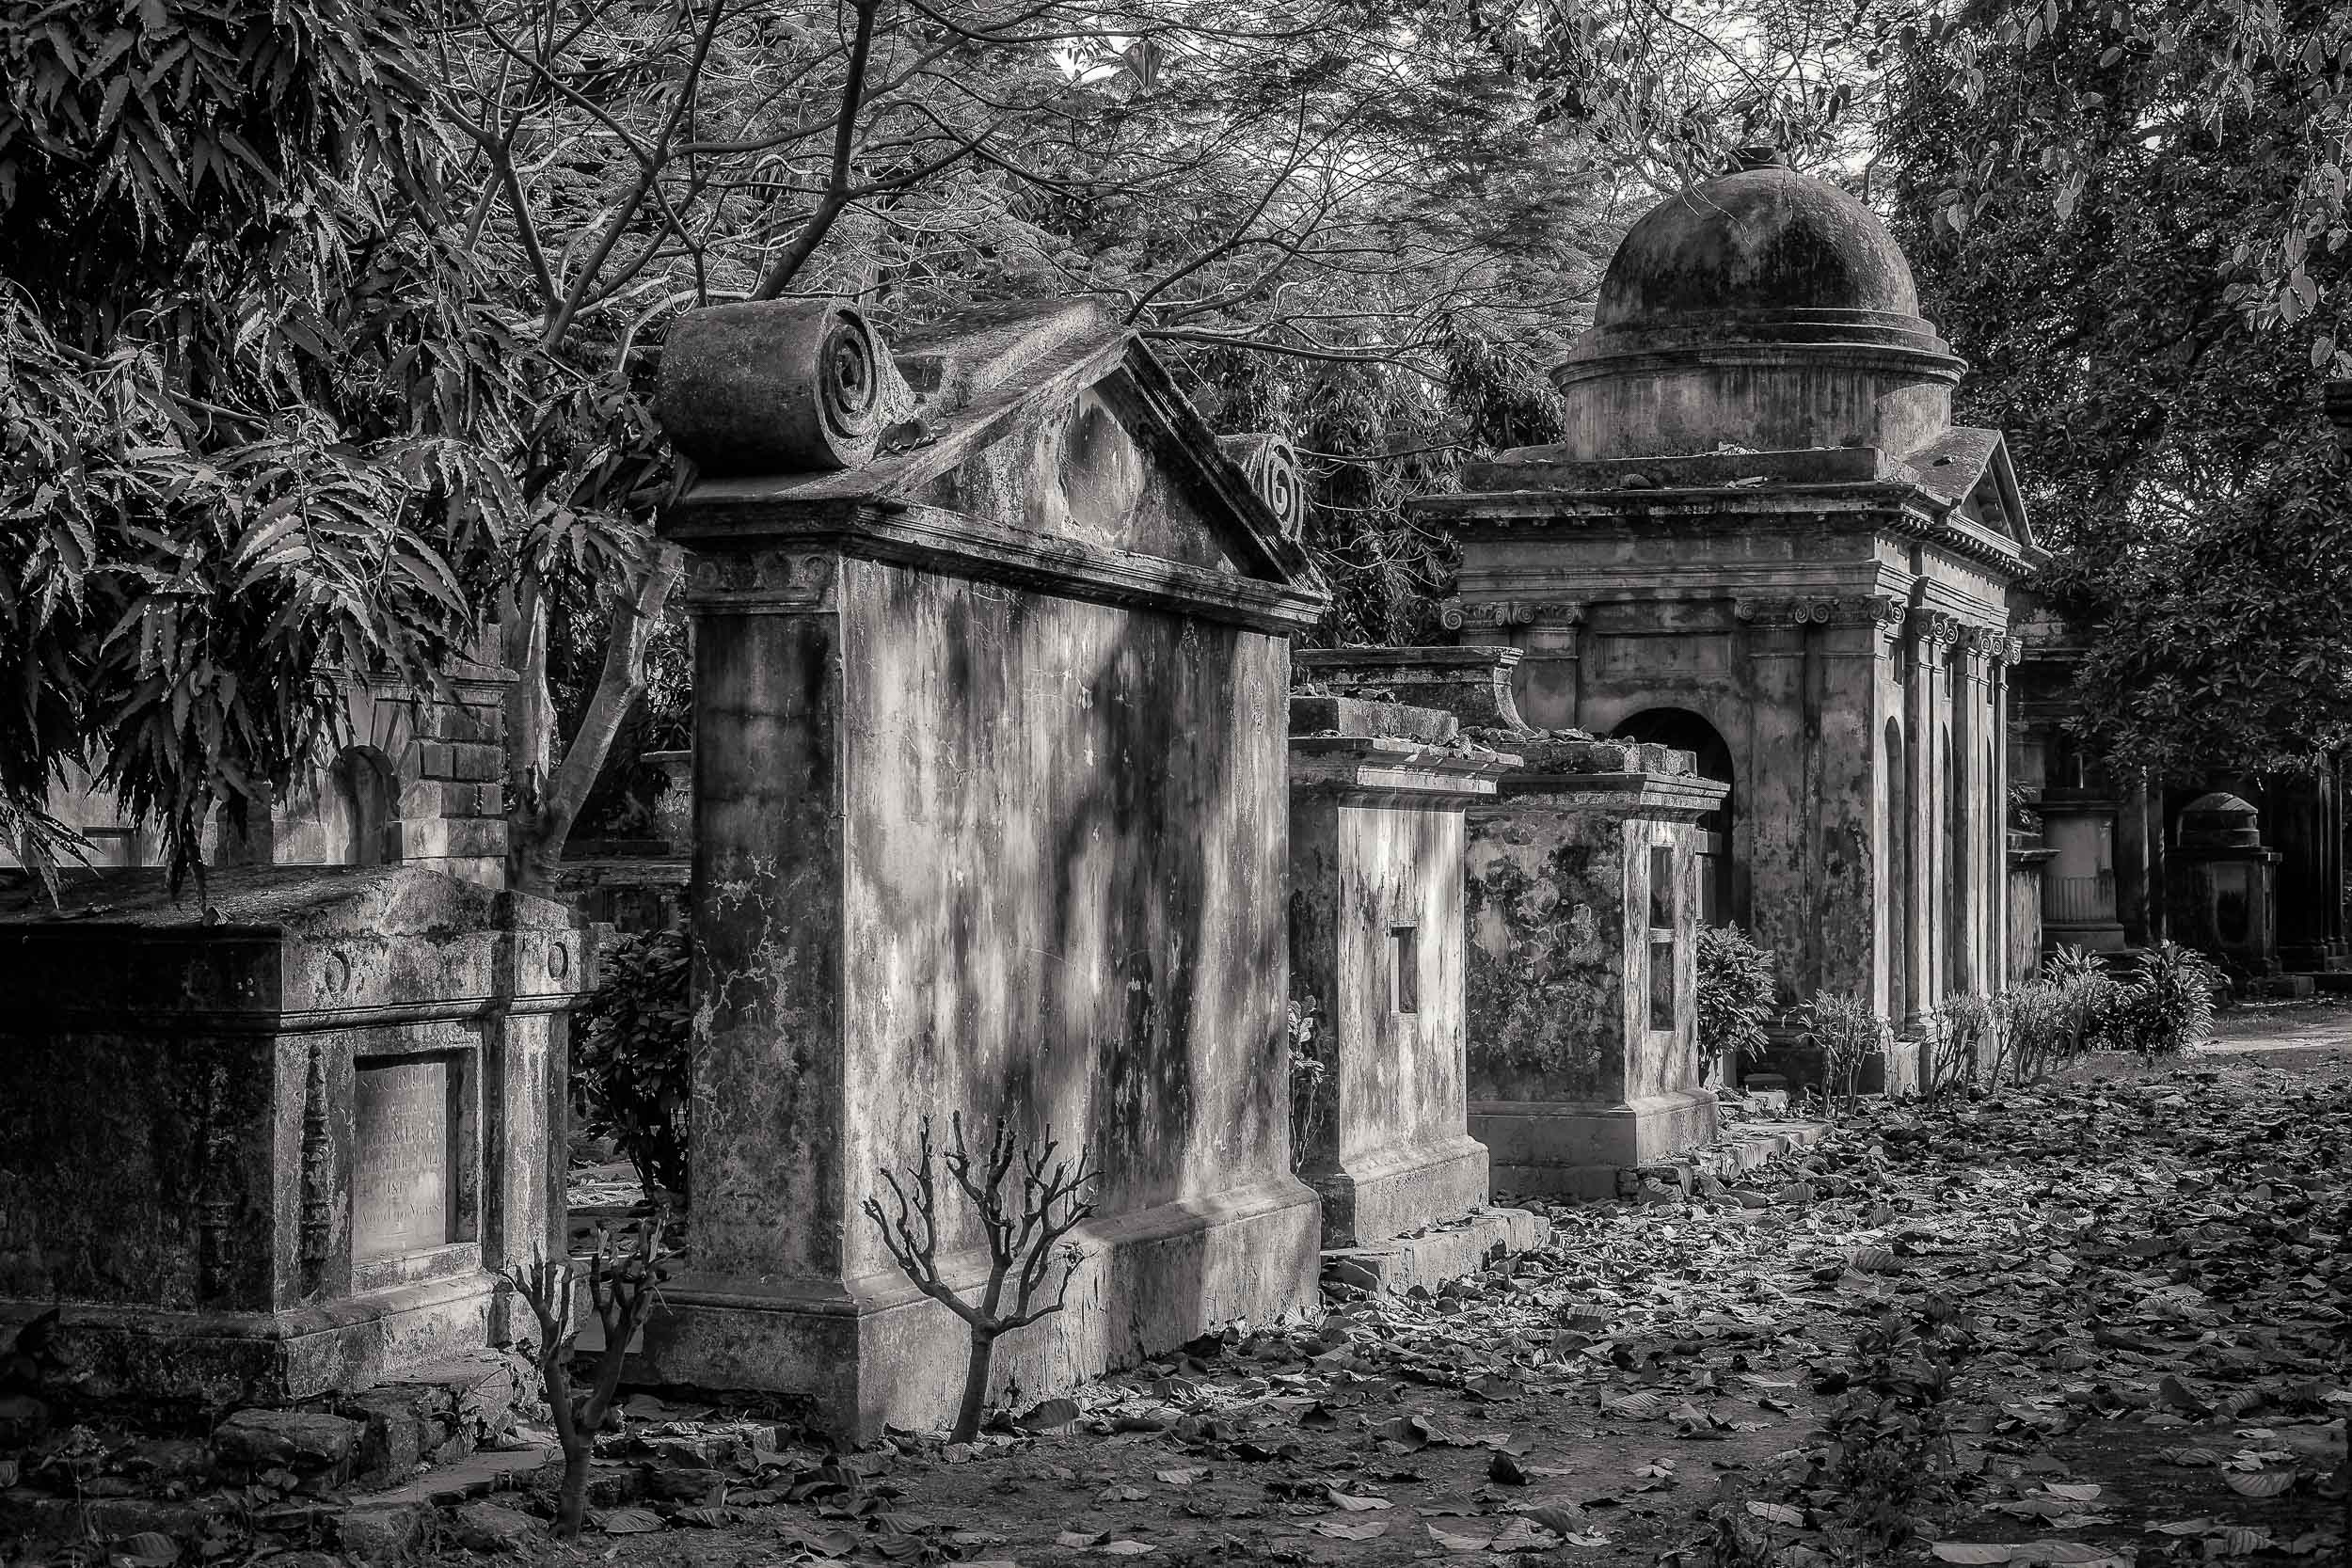 Memories of Empire  are evident in many of the tombs wtihin the  South Park Street Cemetery  in  Kolkata, India .